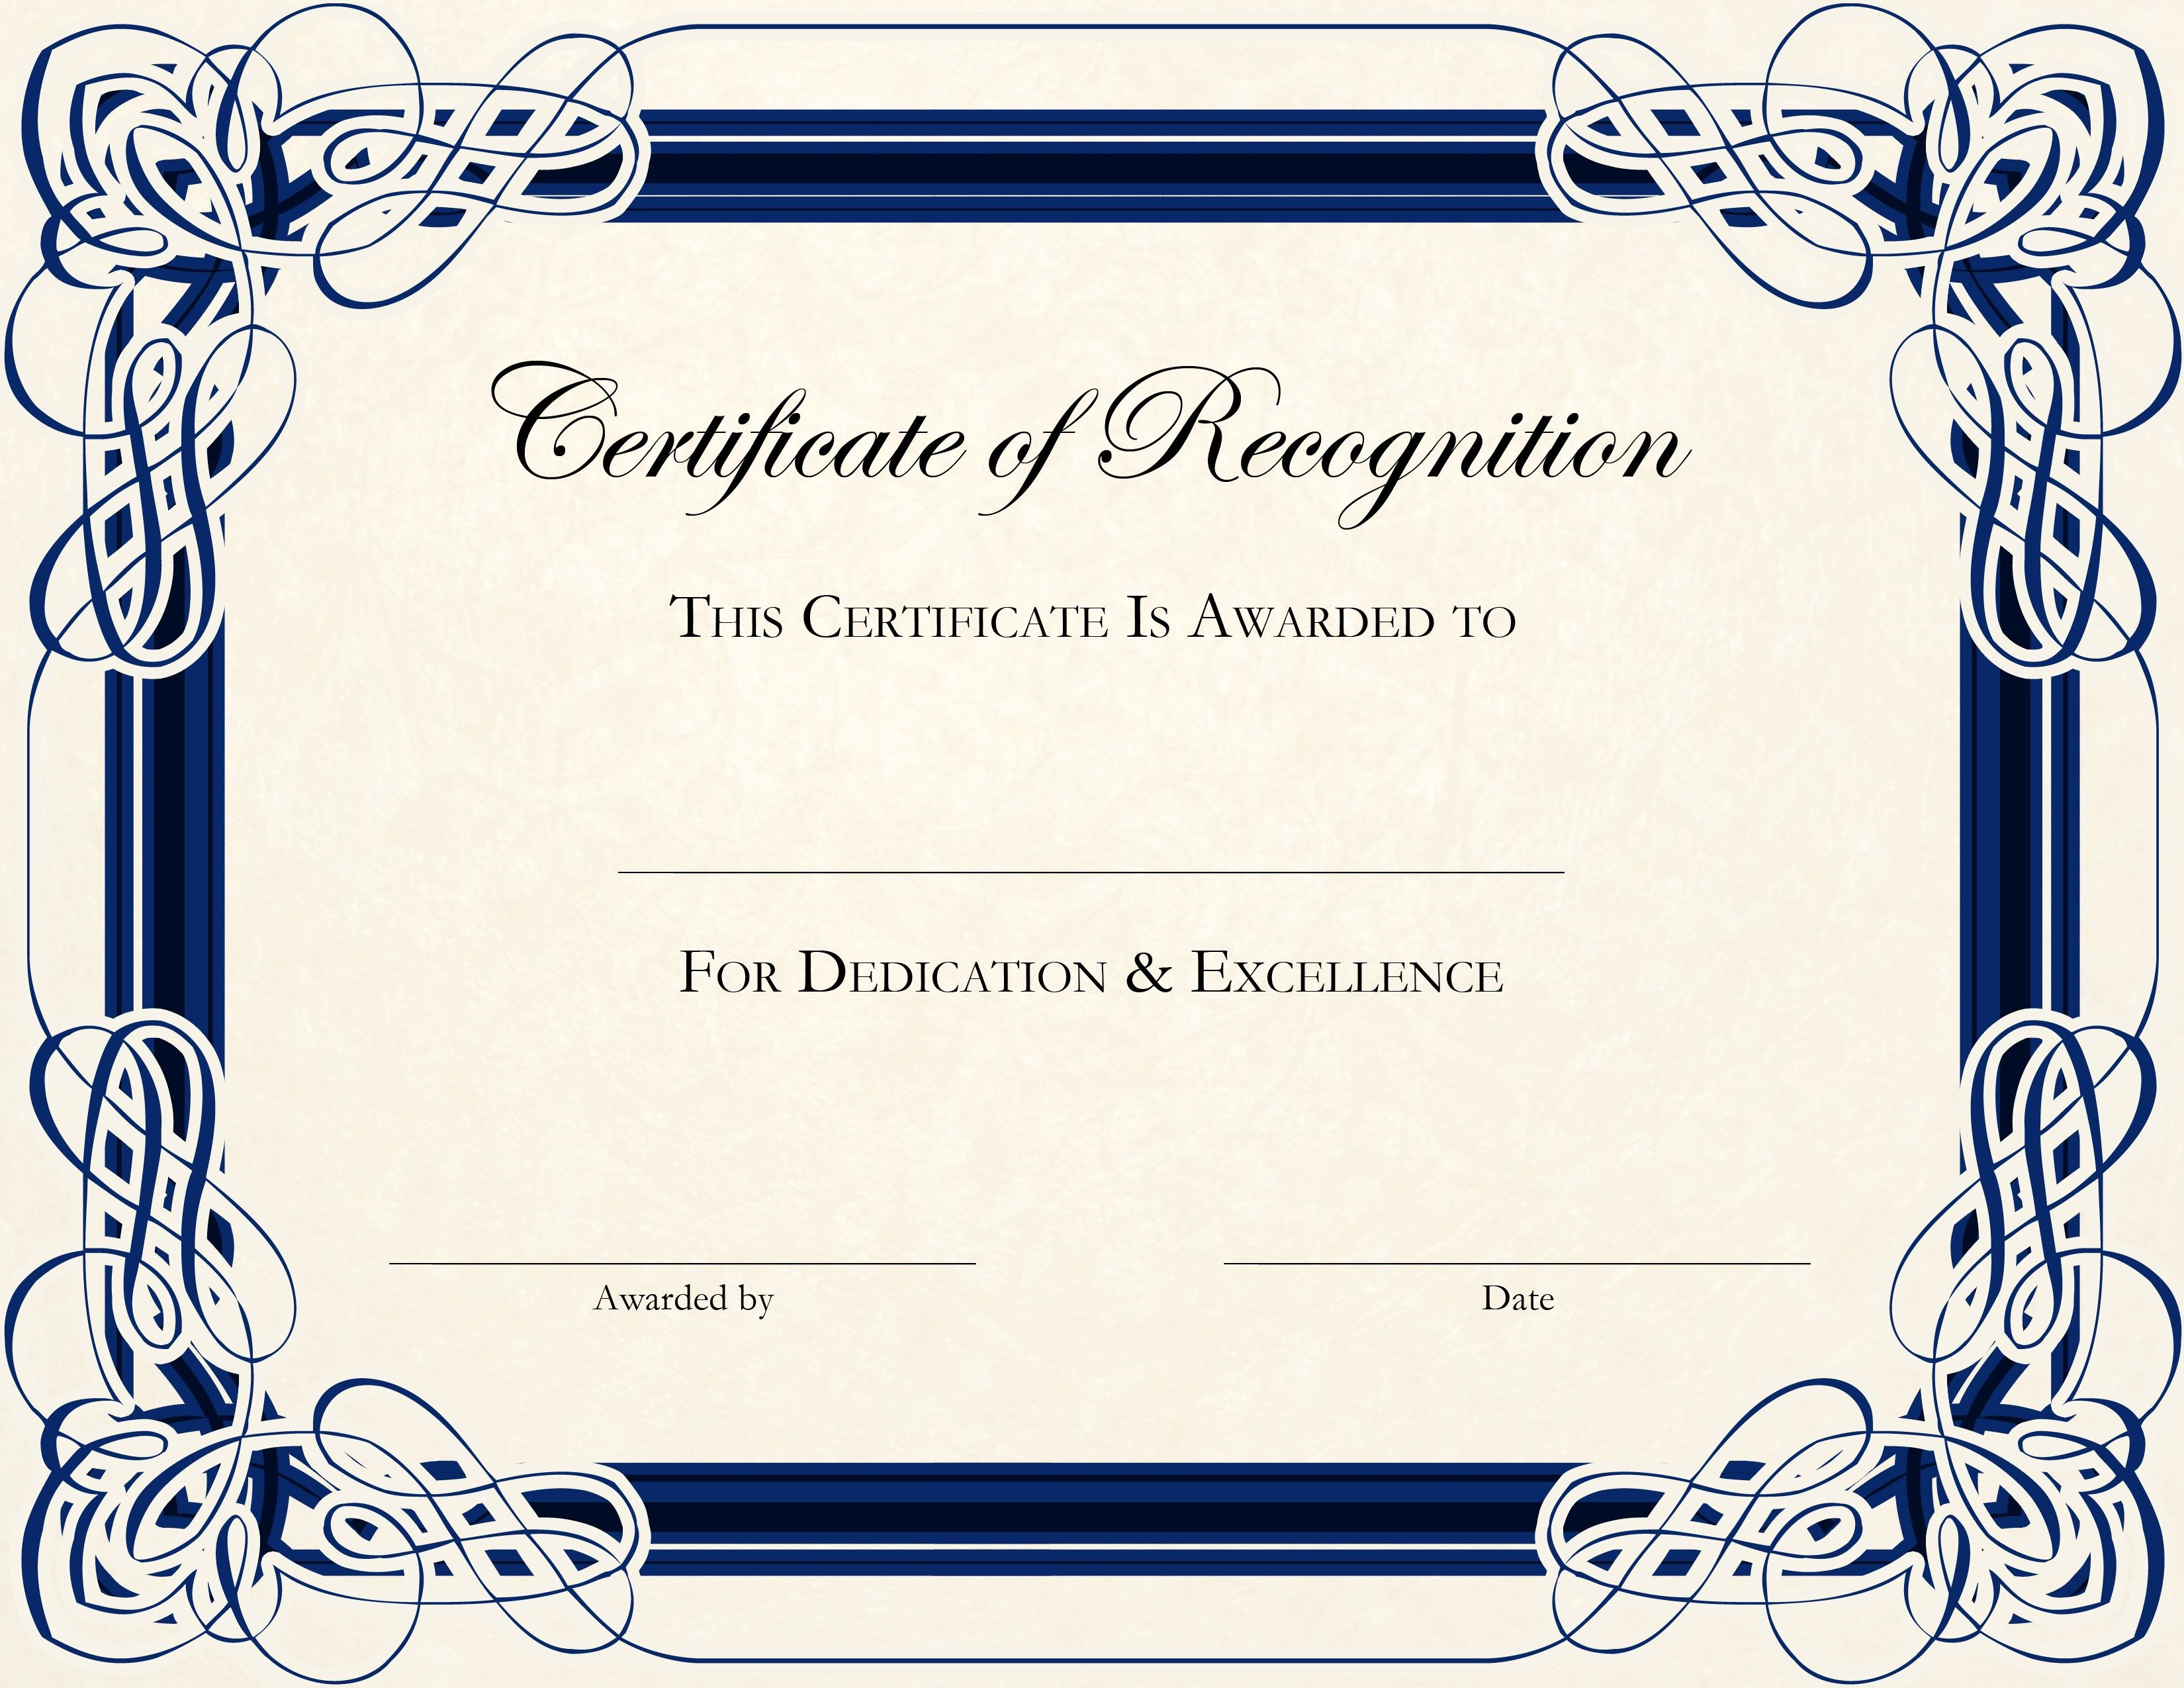 Free Printable Certificate Templates For Teachers   Besttemplate123 - Free Printable Award Certificates